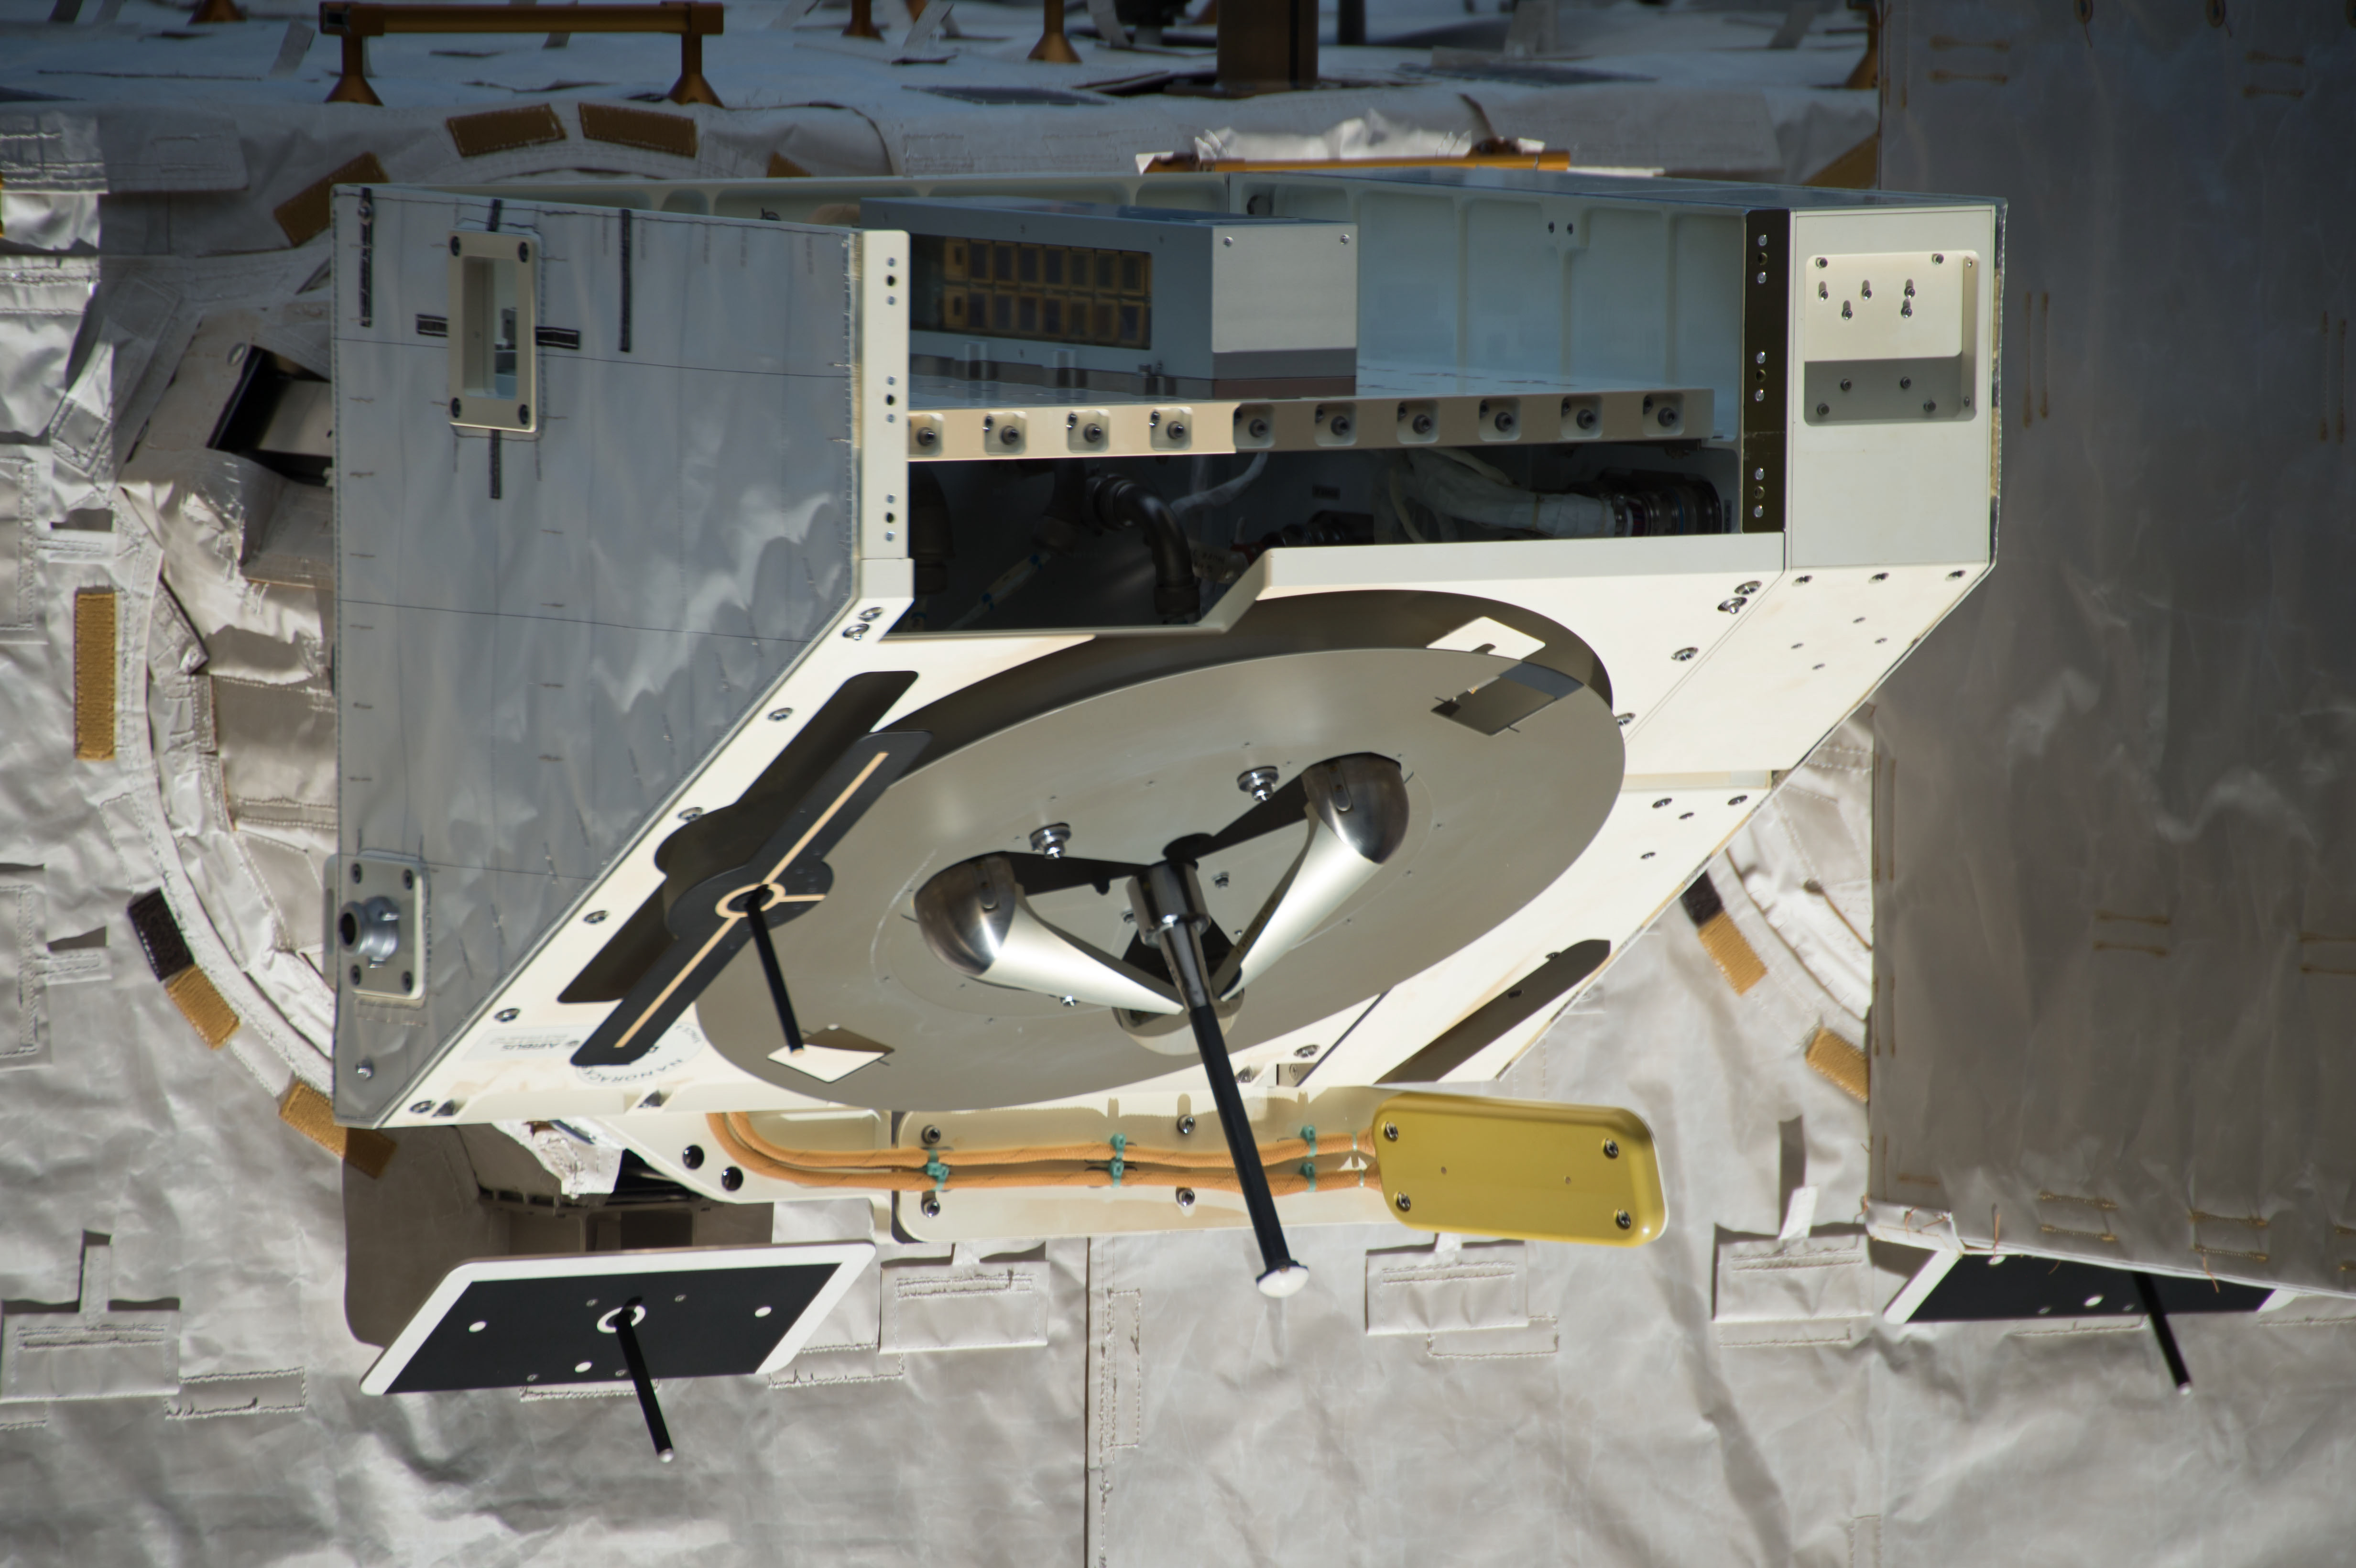 File:Power and Data Grapple Fixture on JEM Exposed Facility (ISS050 ...